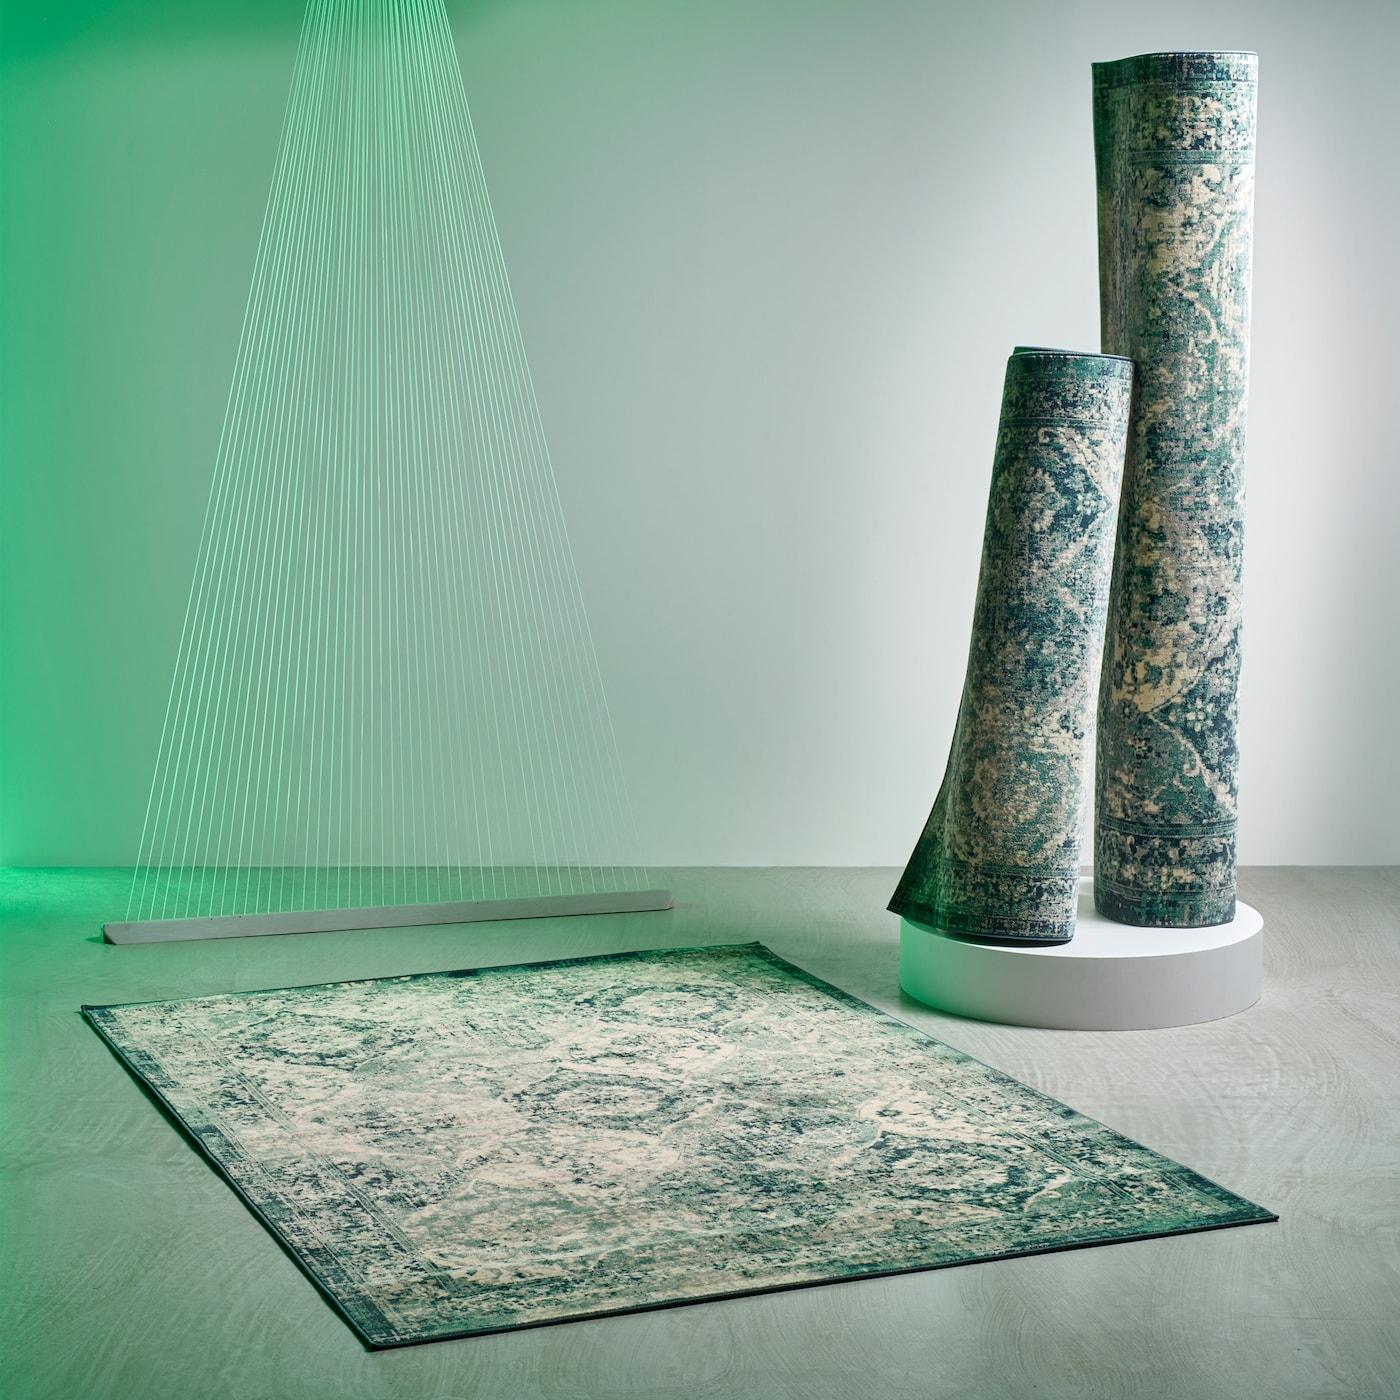 Three IKEA VONSBÄK rugs with a worn-out vintage look featuring an oriental pattern in green tones.